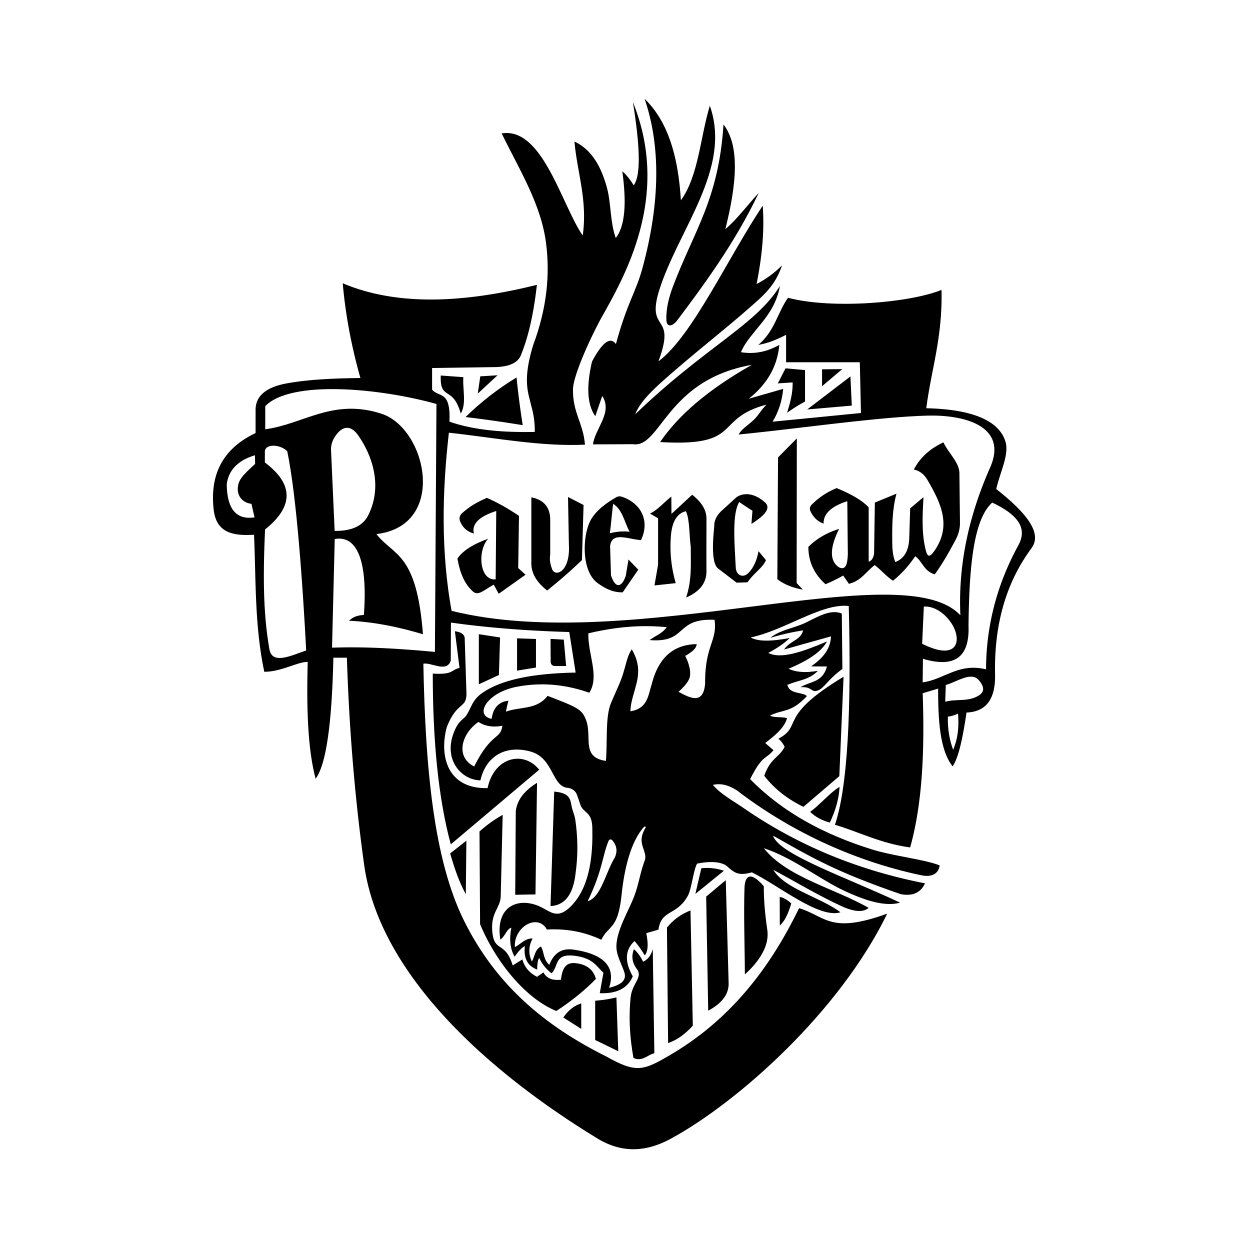 Ravenclaw Harry Potter House Badge Crest Graphics Design